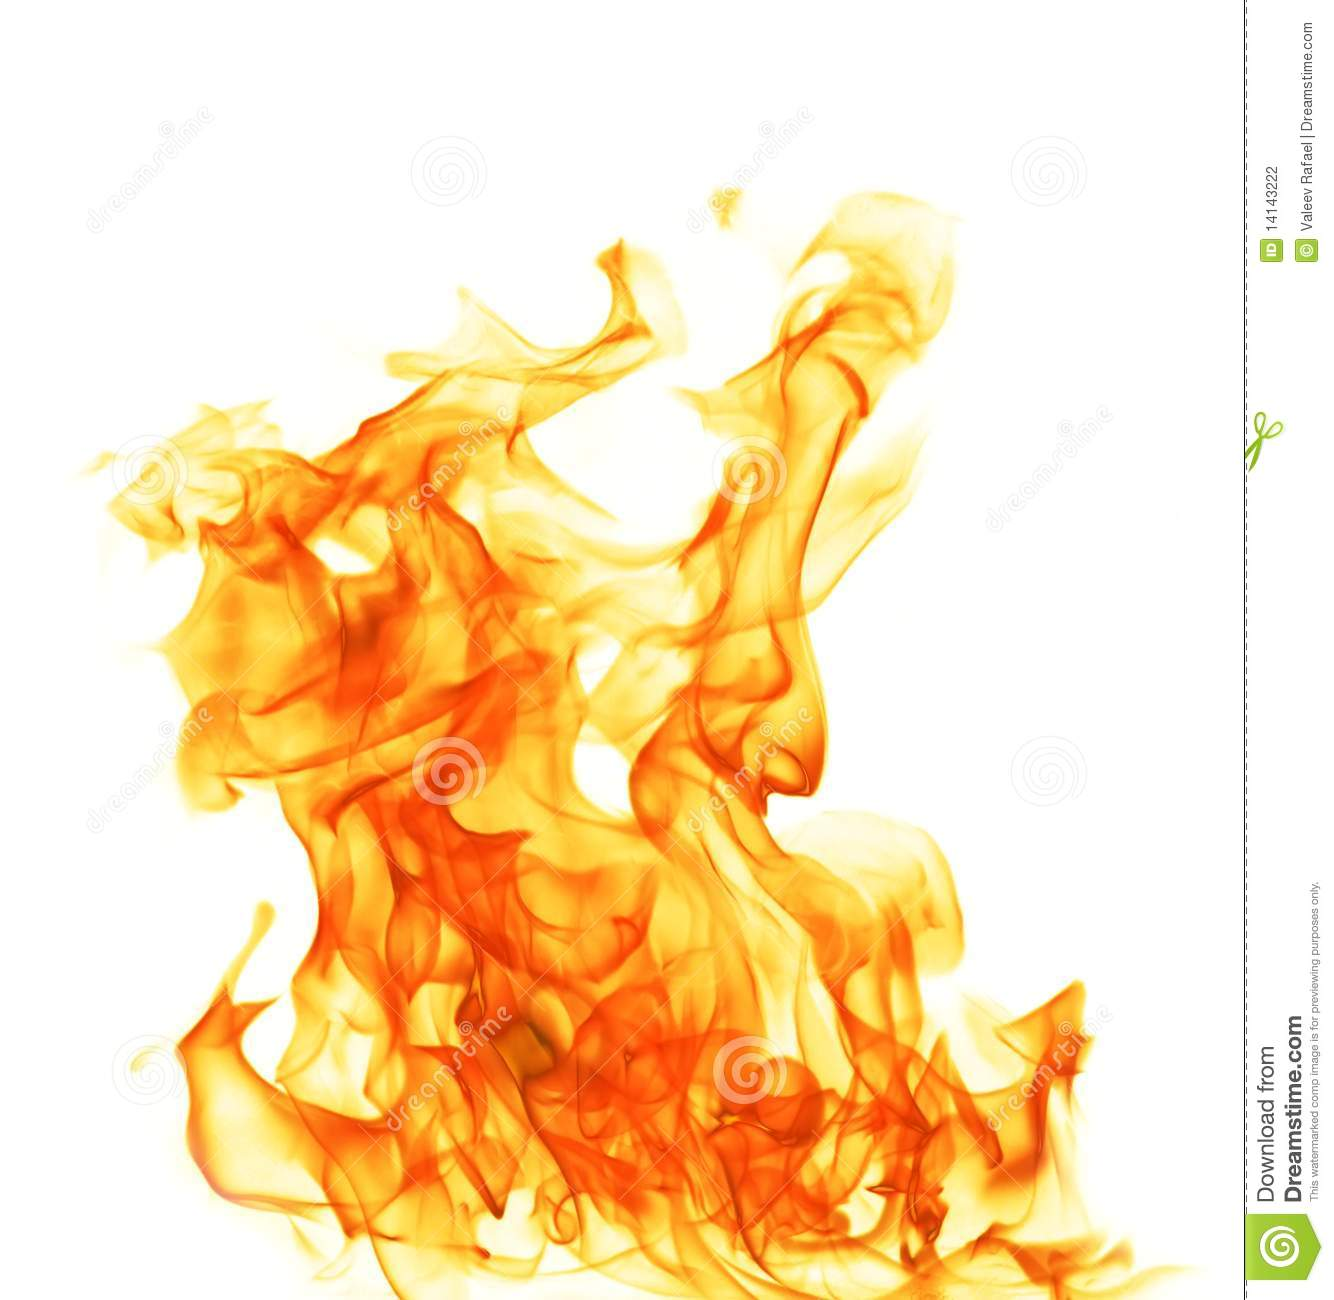 61c4e3bcd Fire Isolated On White Background Stock Photo - Image of isolated ...